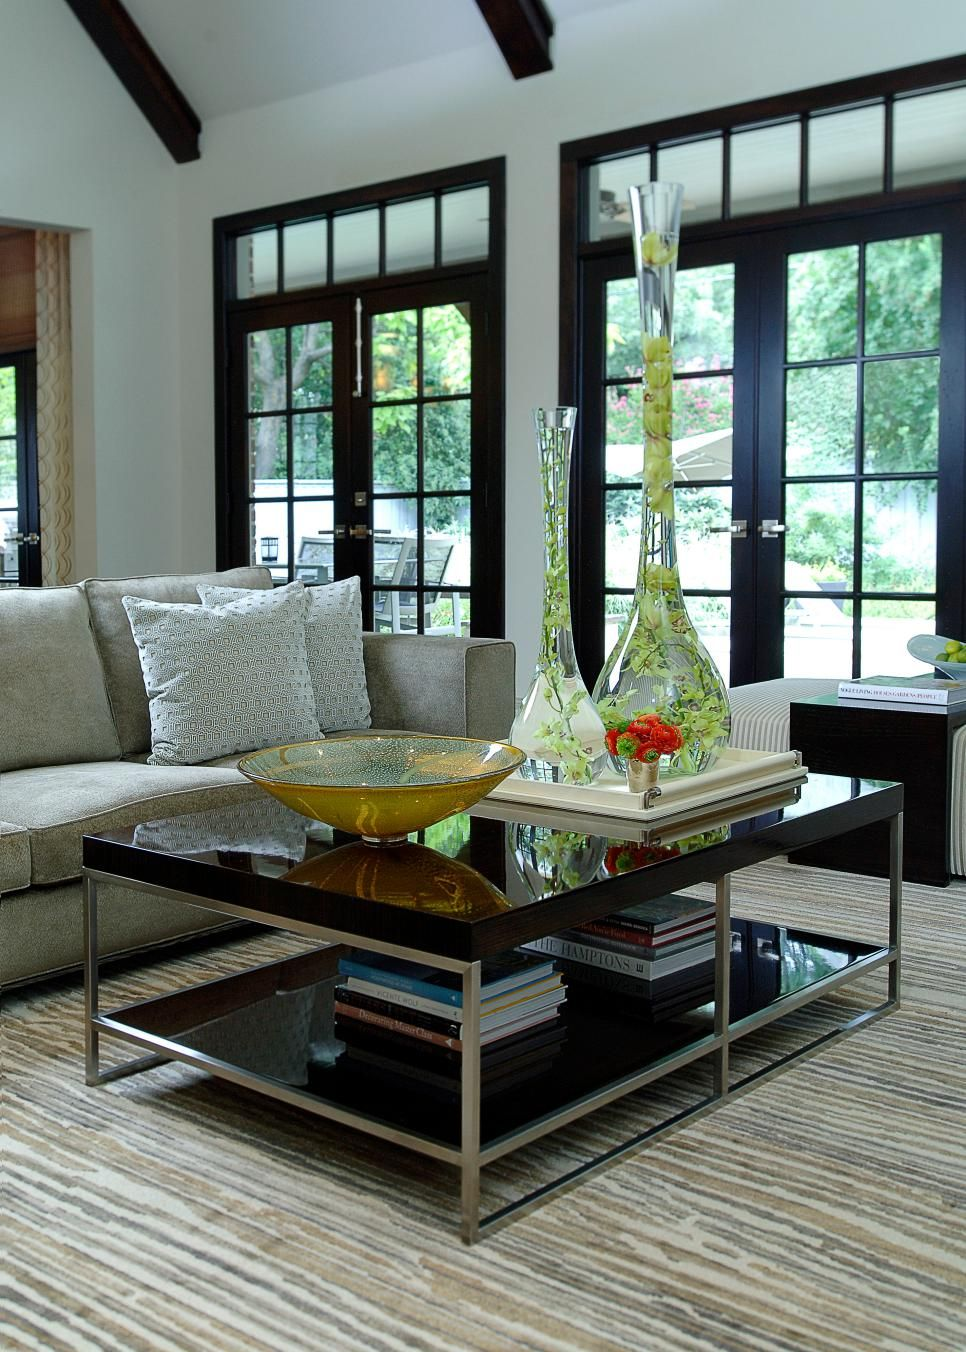 A welldesigned home is still attainable with little ones